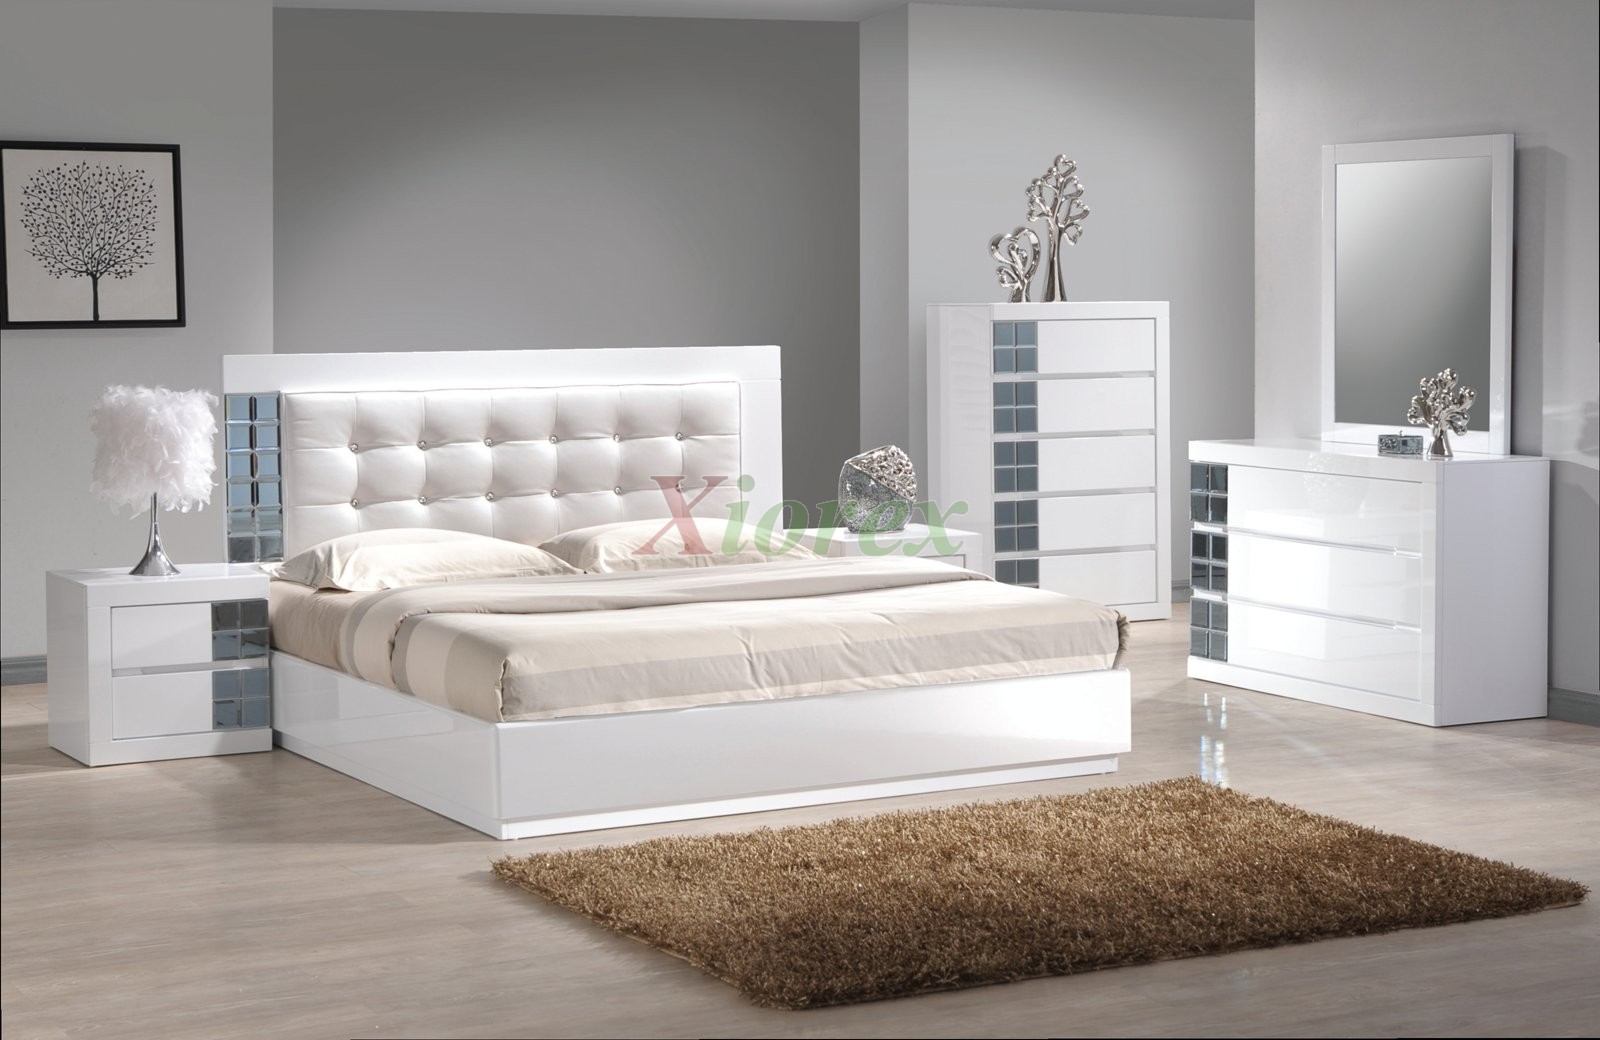 white upholstered beds. White Platform Bedroom Furniture Set W Upholstered Headboard Beds 149 E